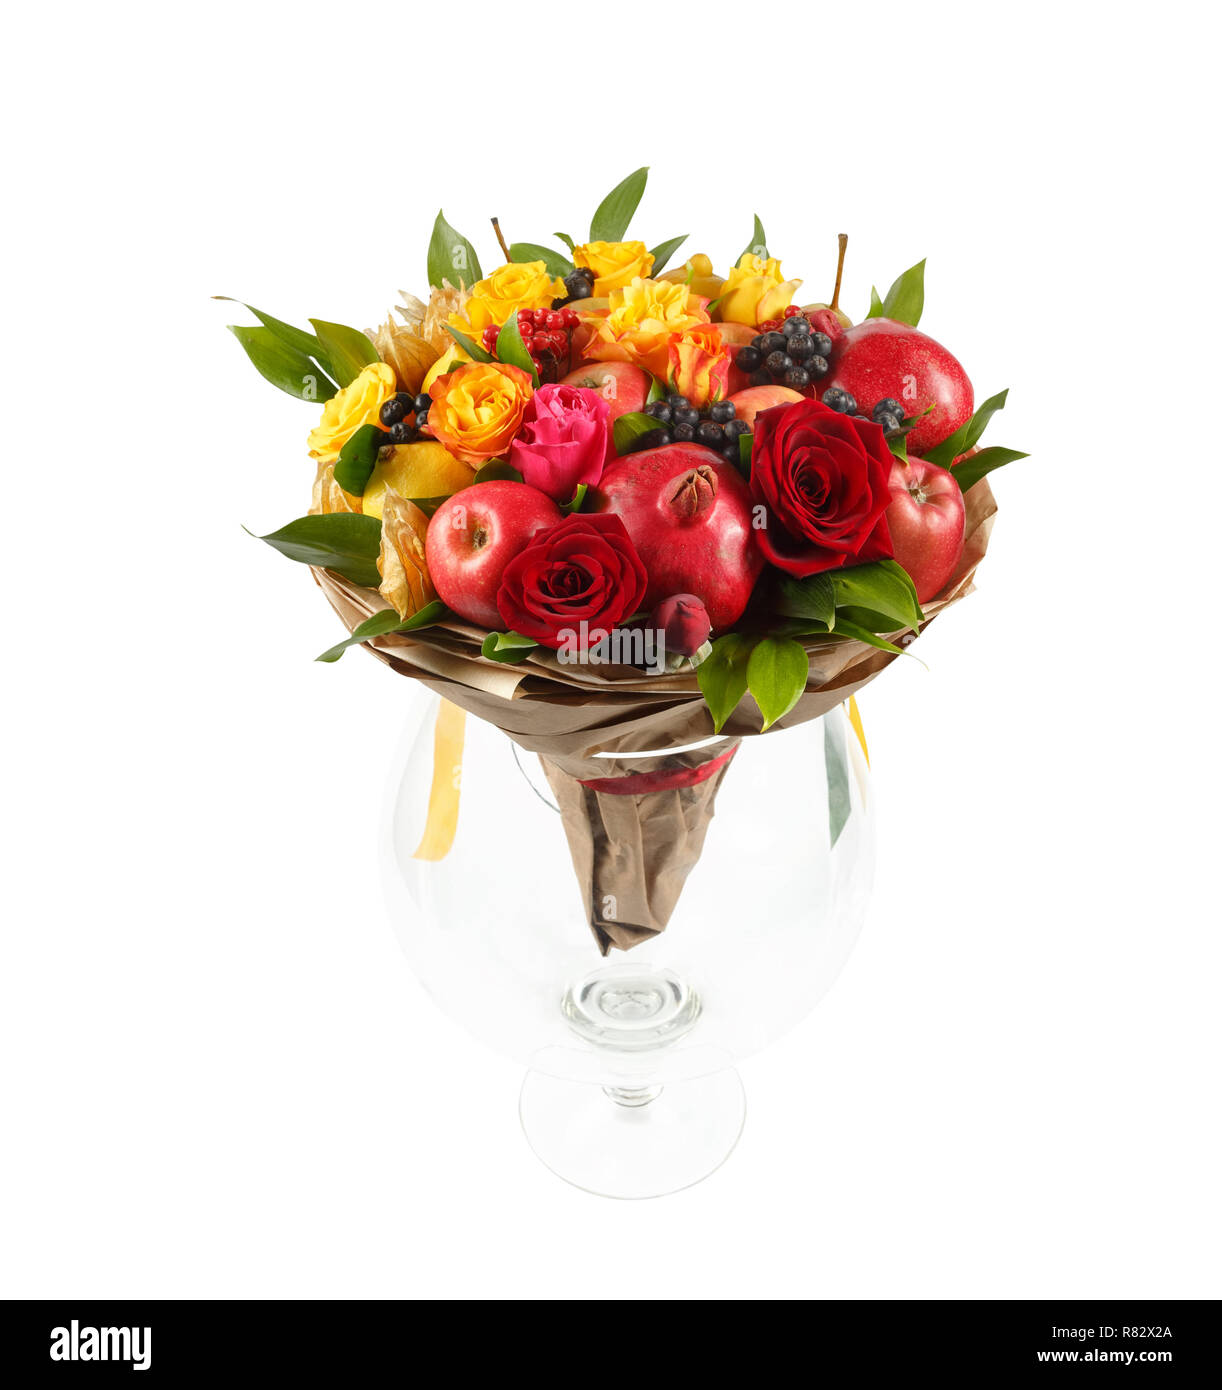 Original Gift In The Form Of A Bouquet Consisting Of Yellow And Red